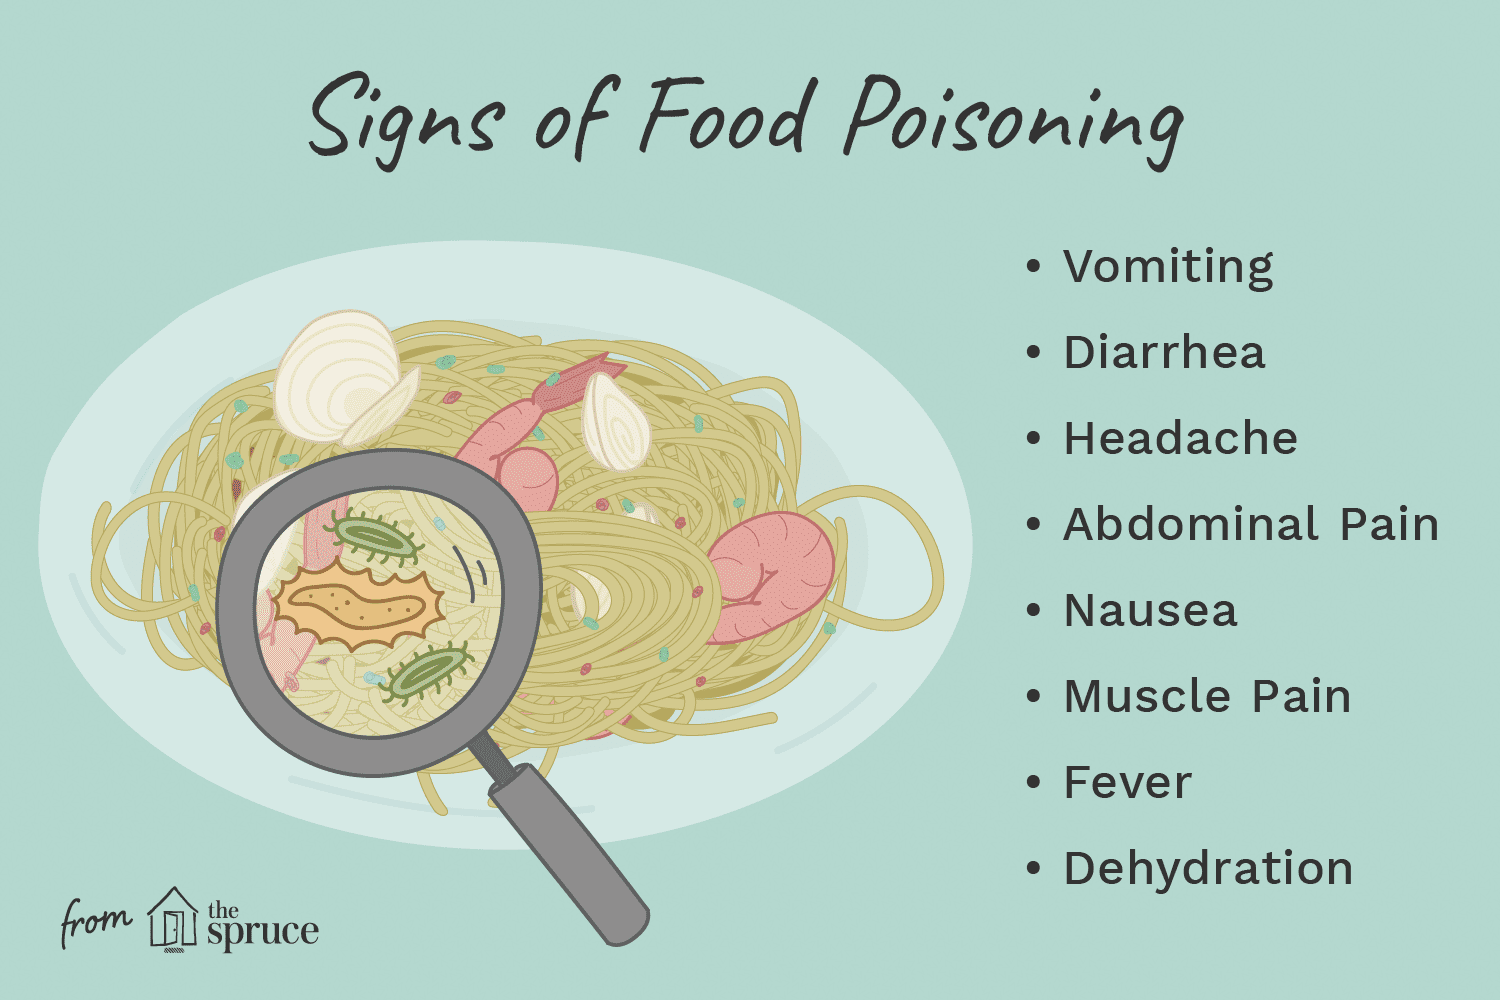 Telltale Signs of Food Poisoning